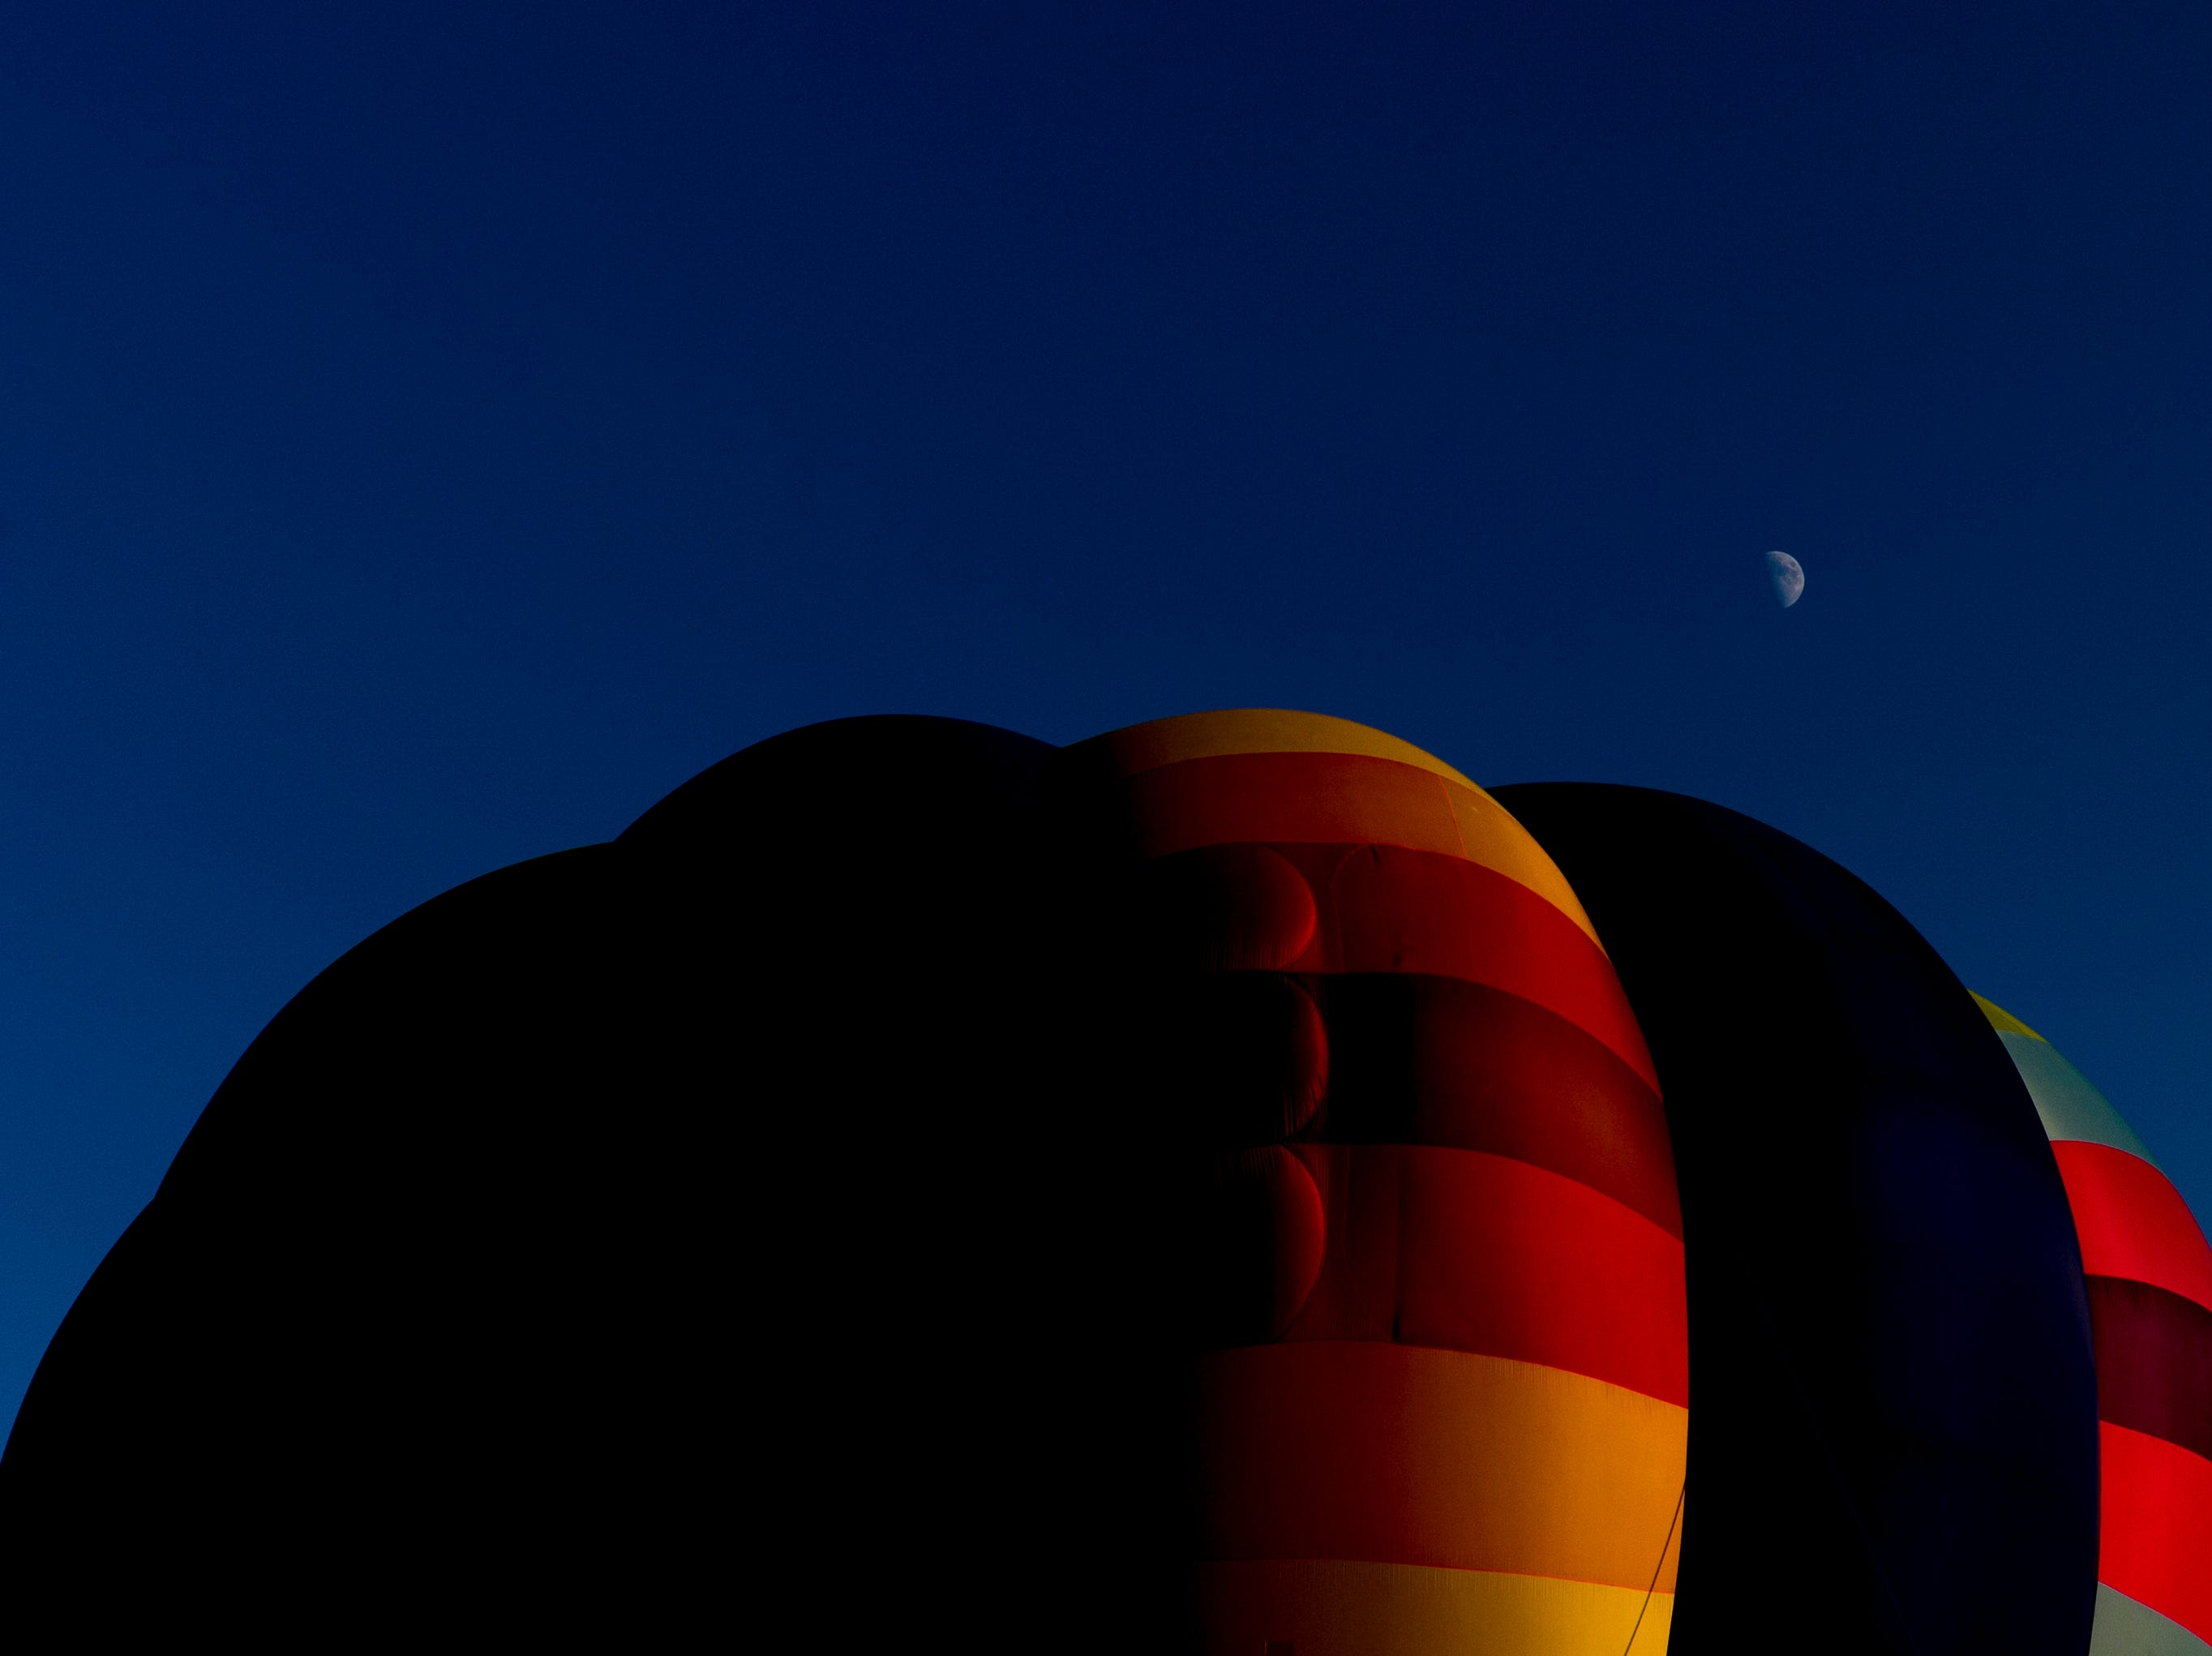 The moon can be seen rising above a hot air balloon at the second annual Smoky Mountain Balloon Festival in Townsend, Tennessee on Saturday, August 18, 2018. The festival featured several hot air balloons, food trucks, wine tasting and live entertainment.